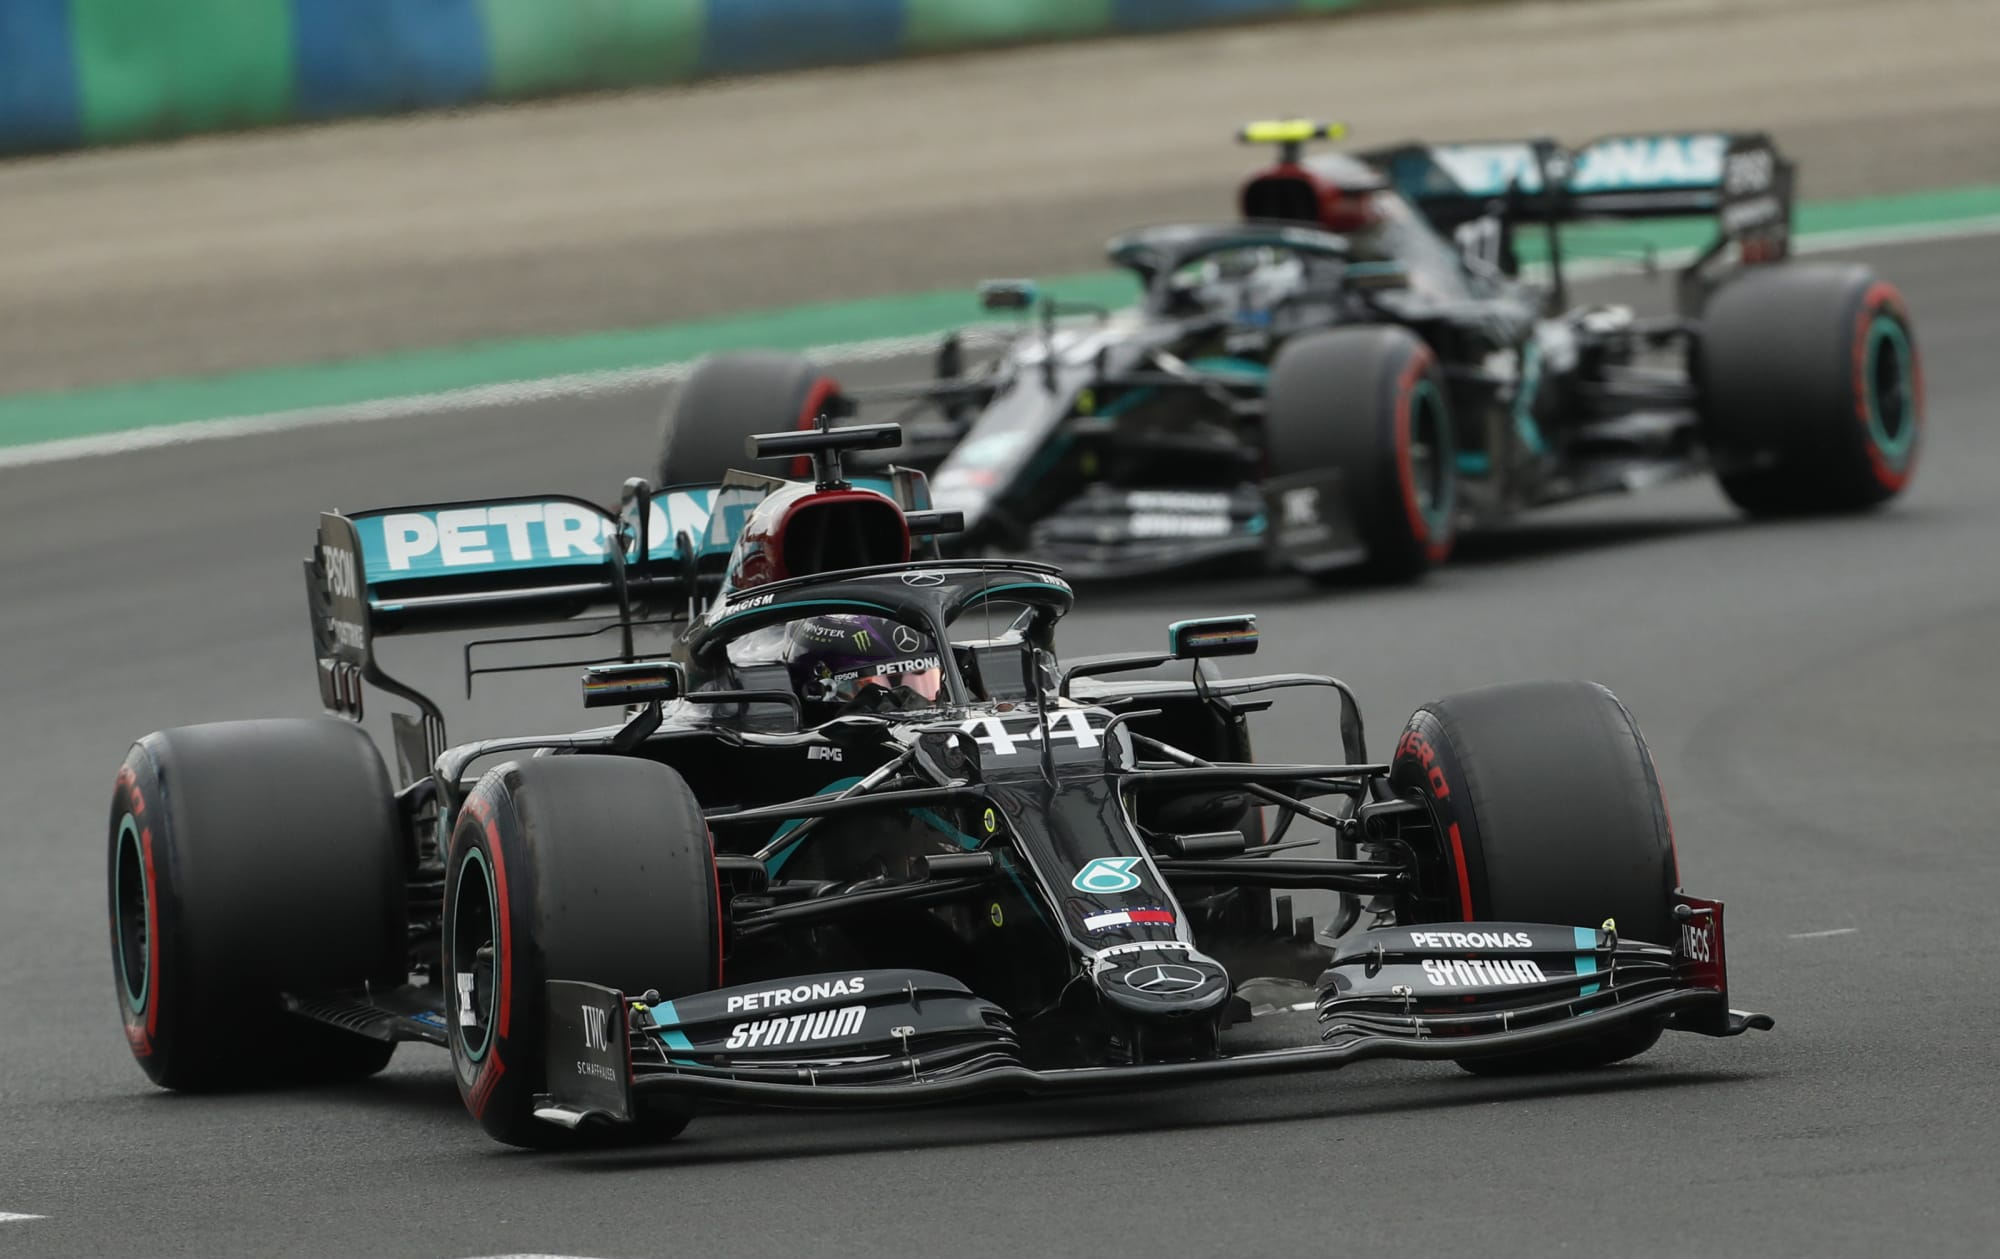 Formula 1: The 2020 world championship 'battle' is over